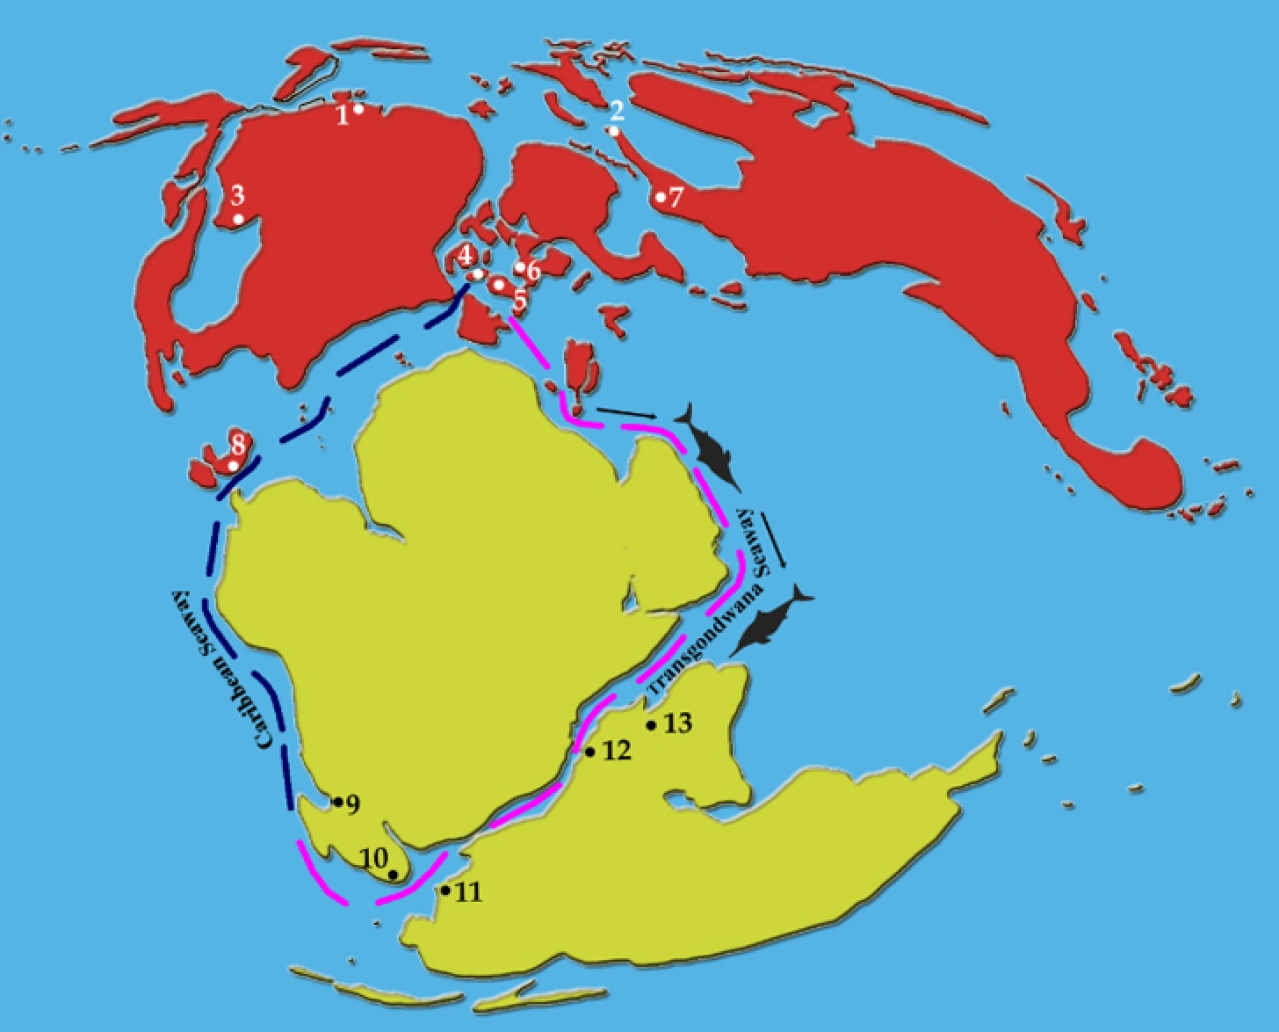 The inferred sea route along which faunal interchanges may have taken place between the western Tethys and the southern Indian Ocean is shown in magenta colour. Number 12 in the map is Madagascar and 13 is India. (Courtesy:  PLoS paper)